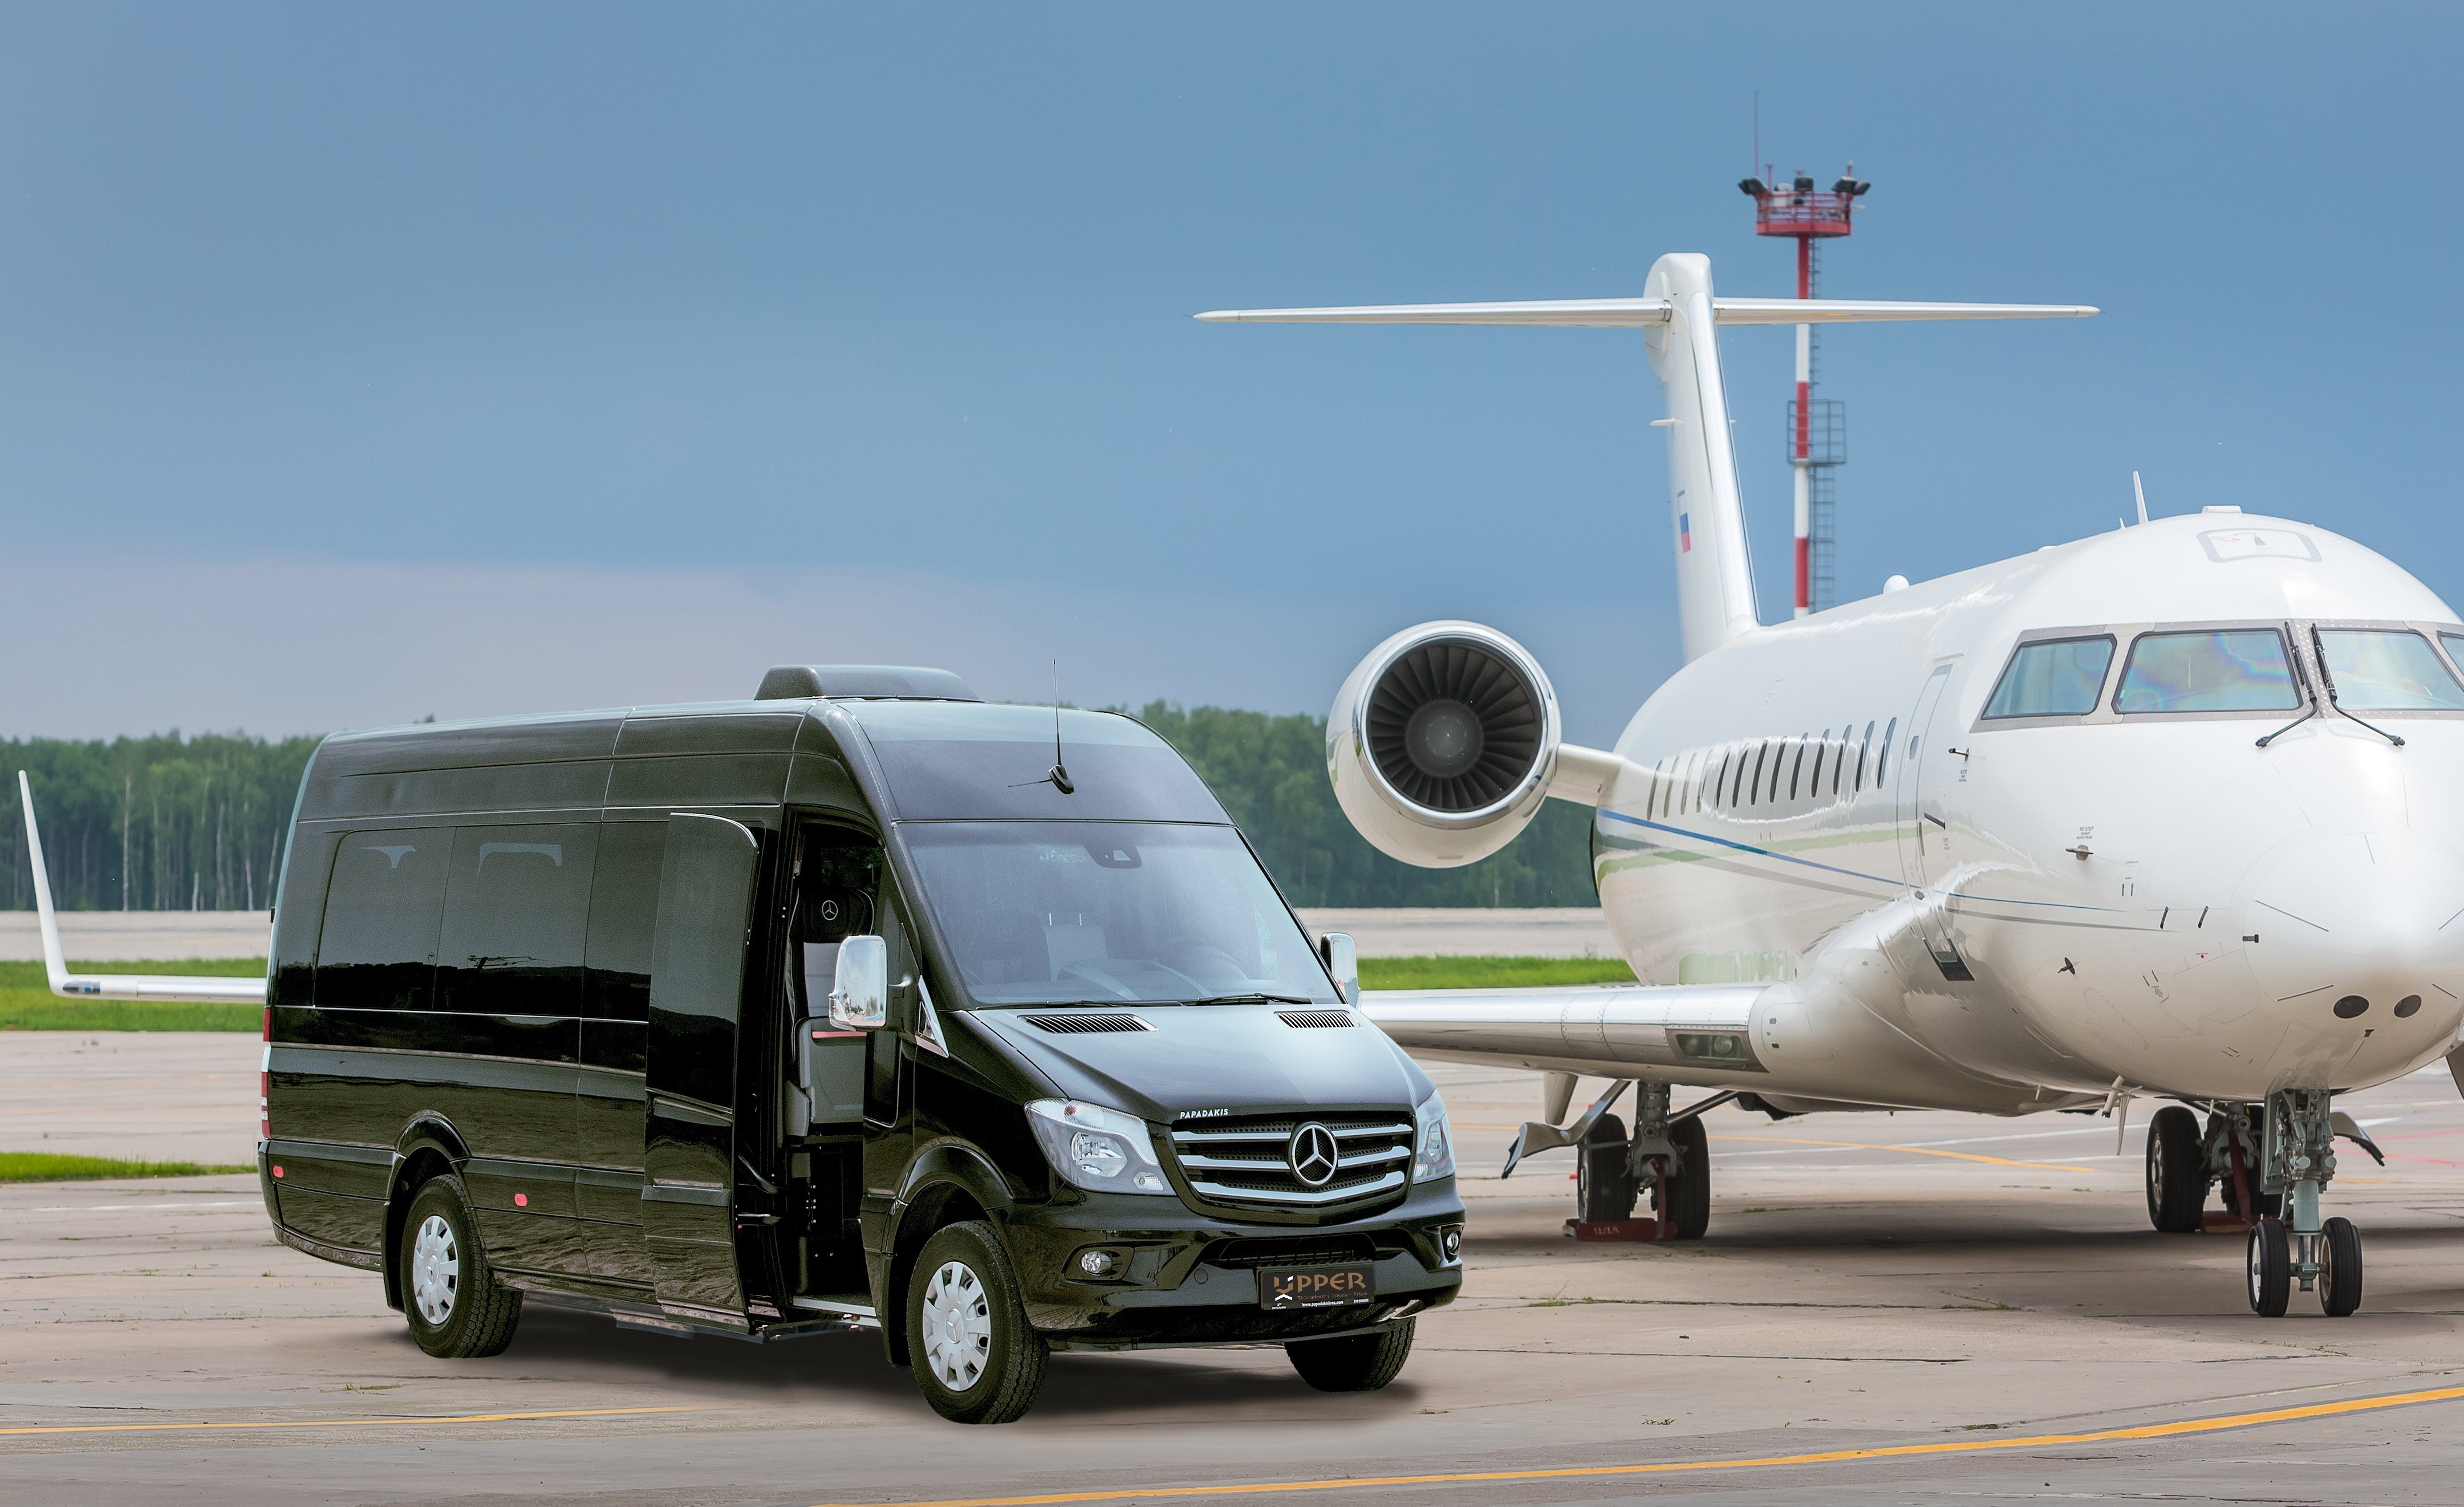 Upper Travel Mercedes-Benz Sprinter Black Avangarde, 22 seats parked by a private jet.